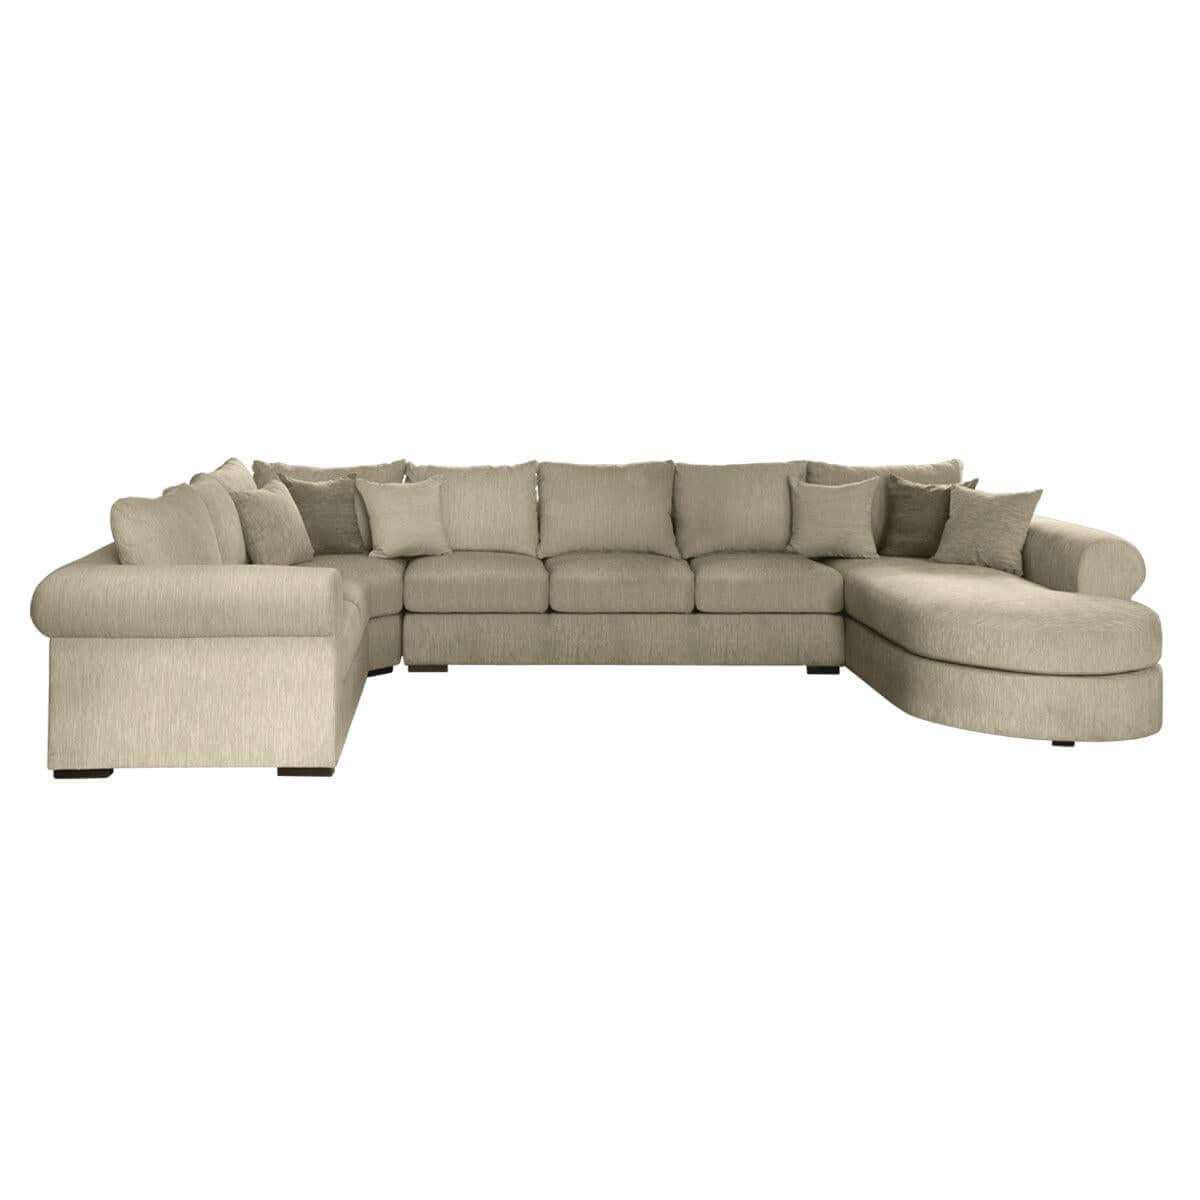 Tuscany Sectional Sofa - classic look paired with modern